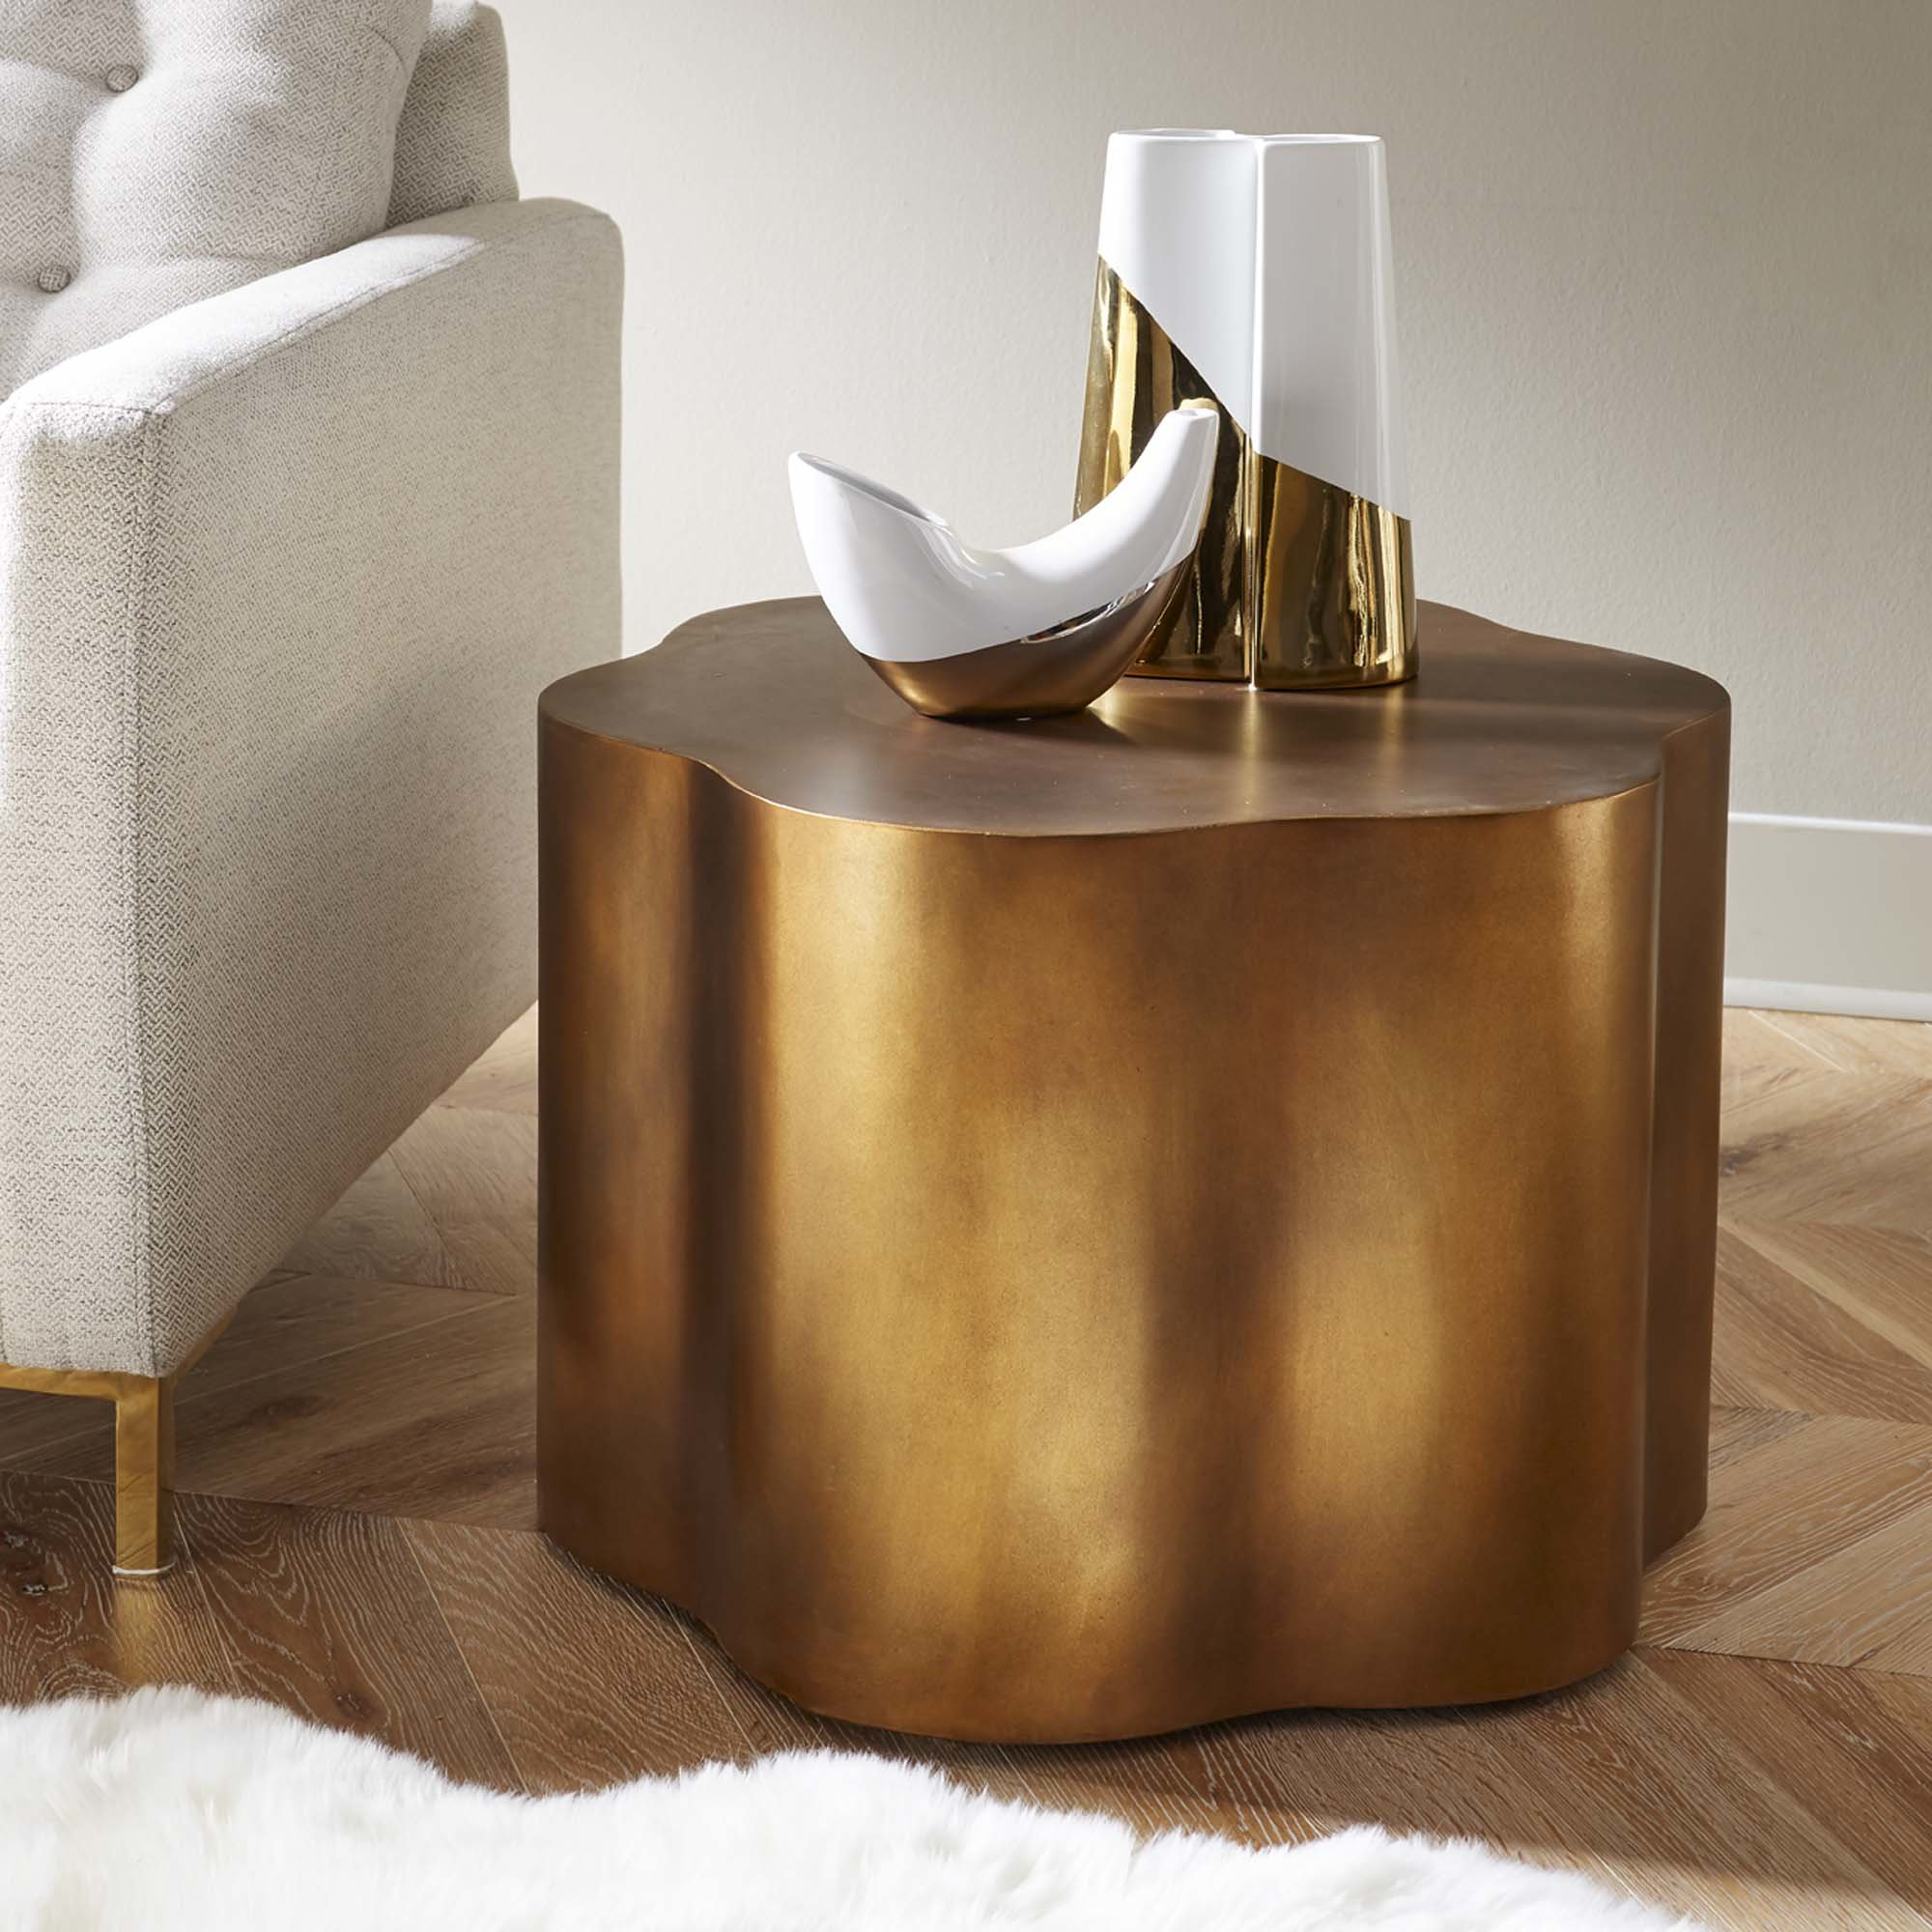 copper accent table loretto end tables edmonton console with doors elm side long skinny round tablecloth flooring large nightstands ultra modern lamps target storage bamboo oak